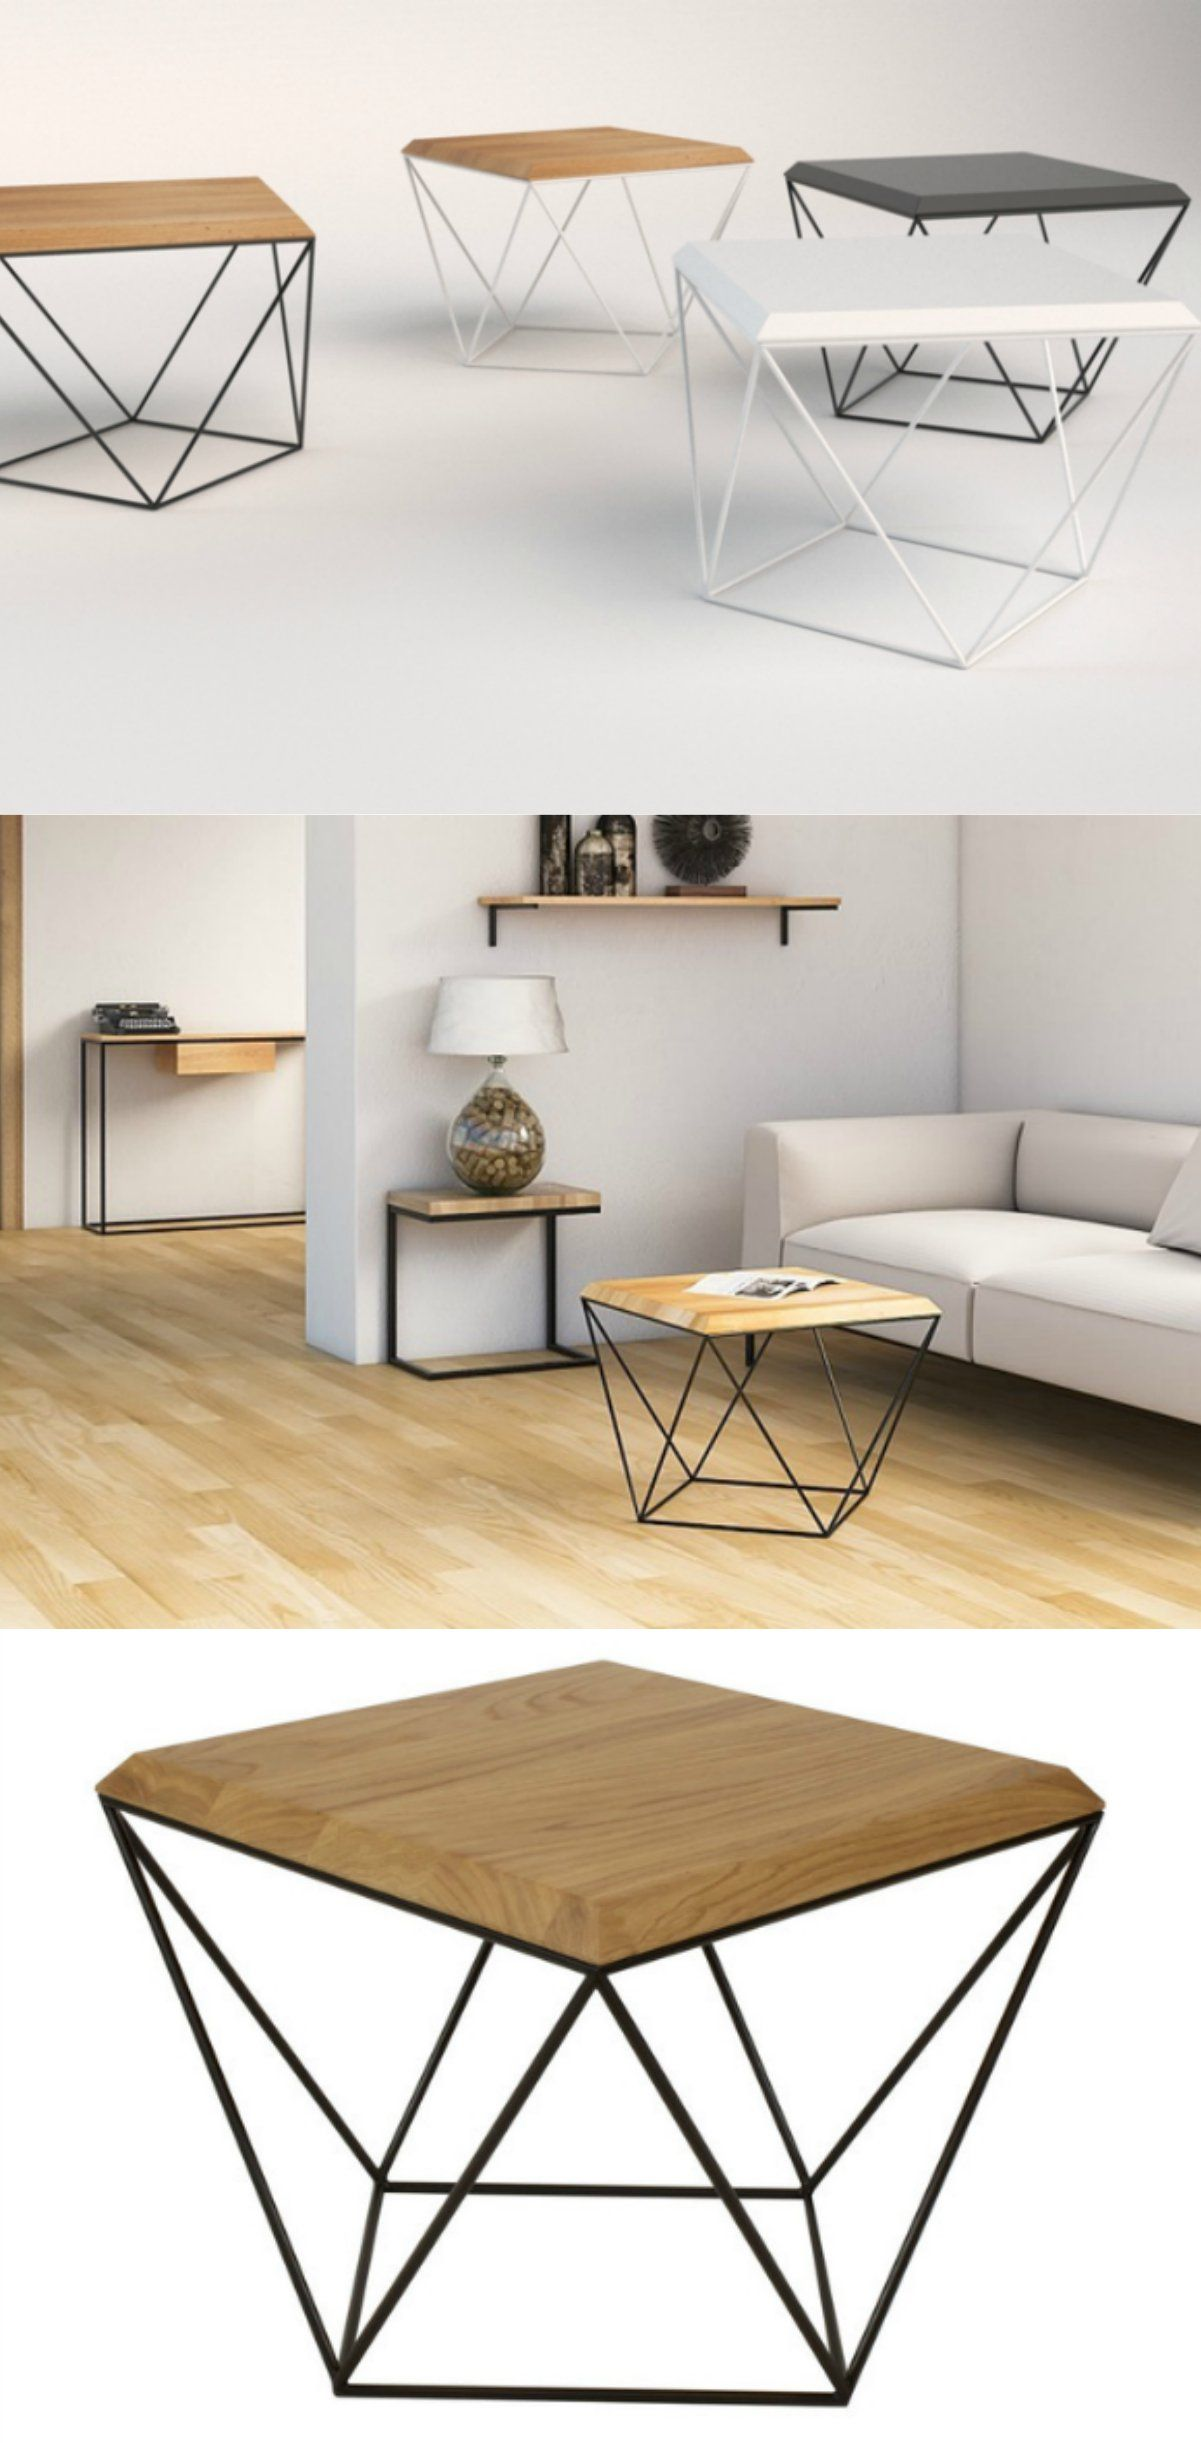 Tulip Wood Is A Minimalist Coffee Table With An Intriguing